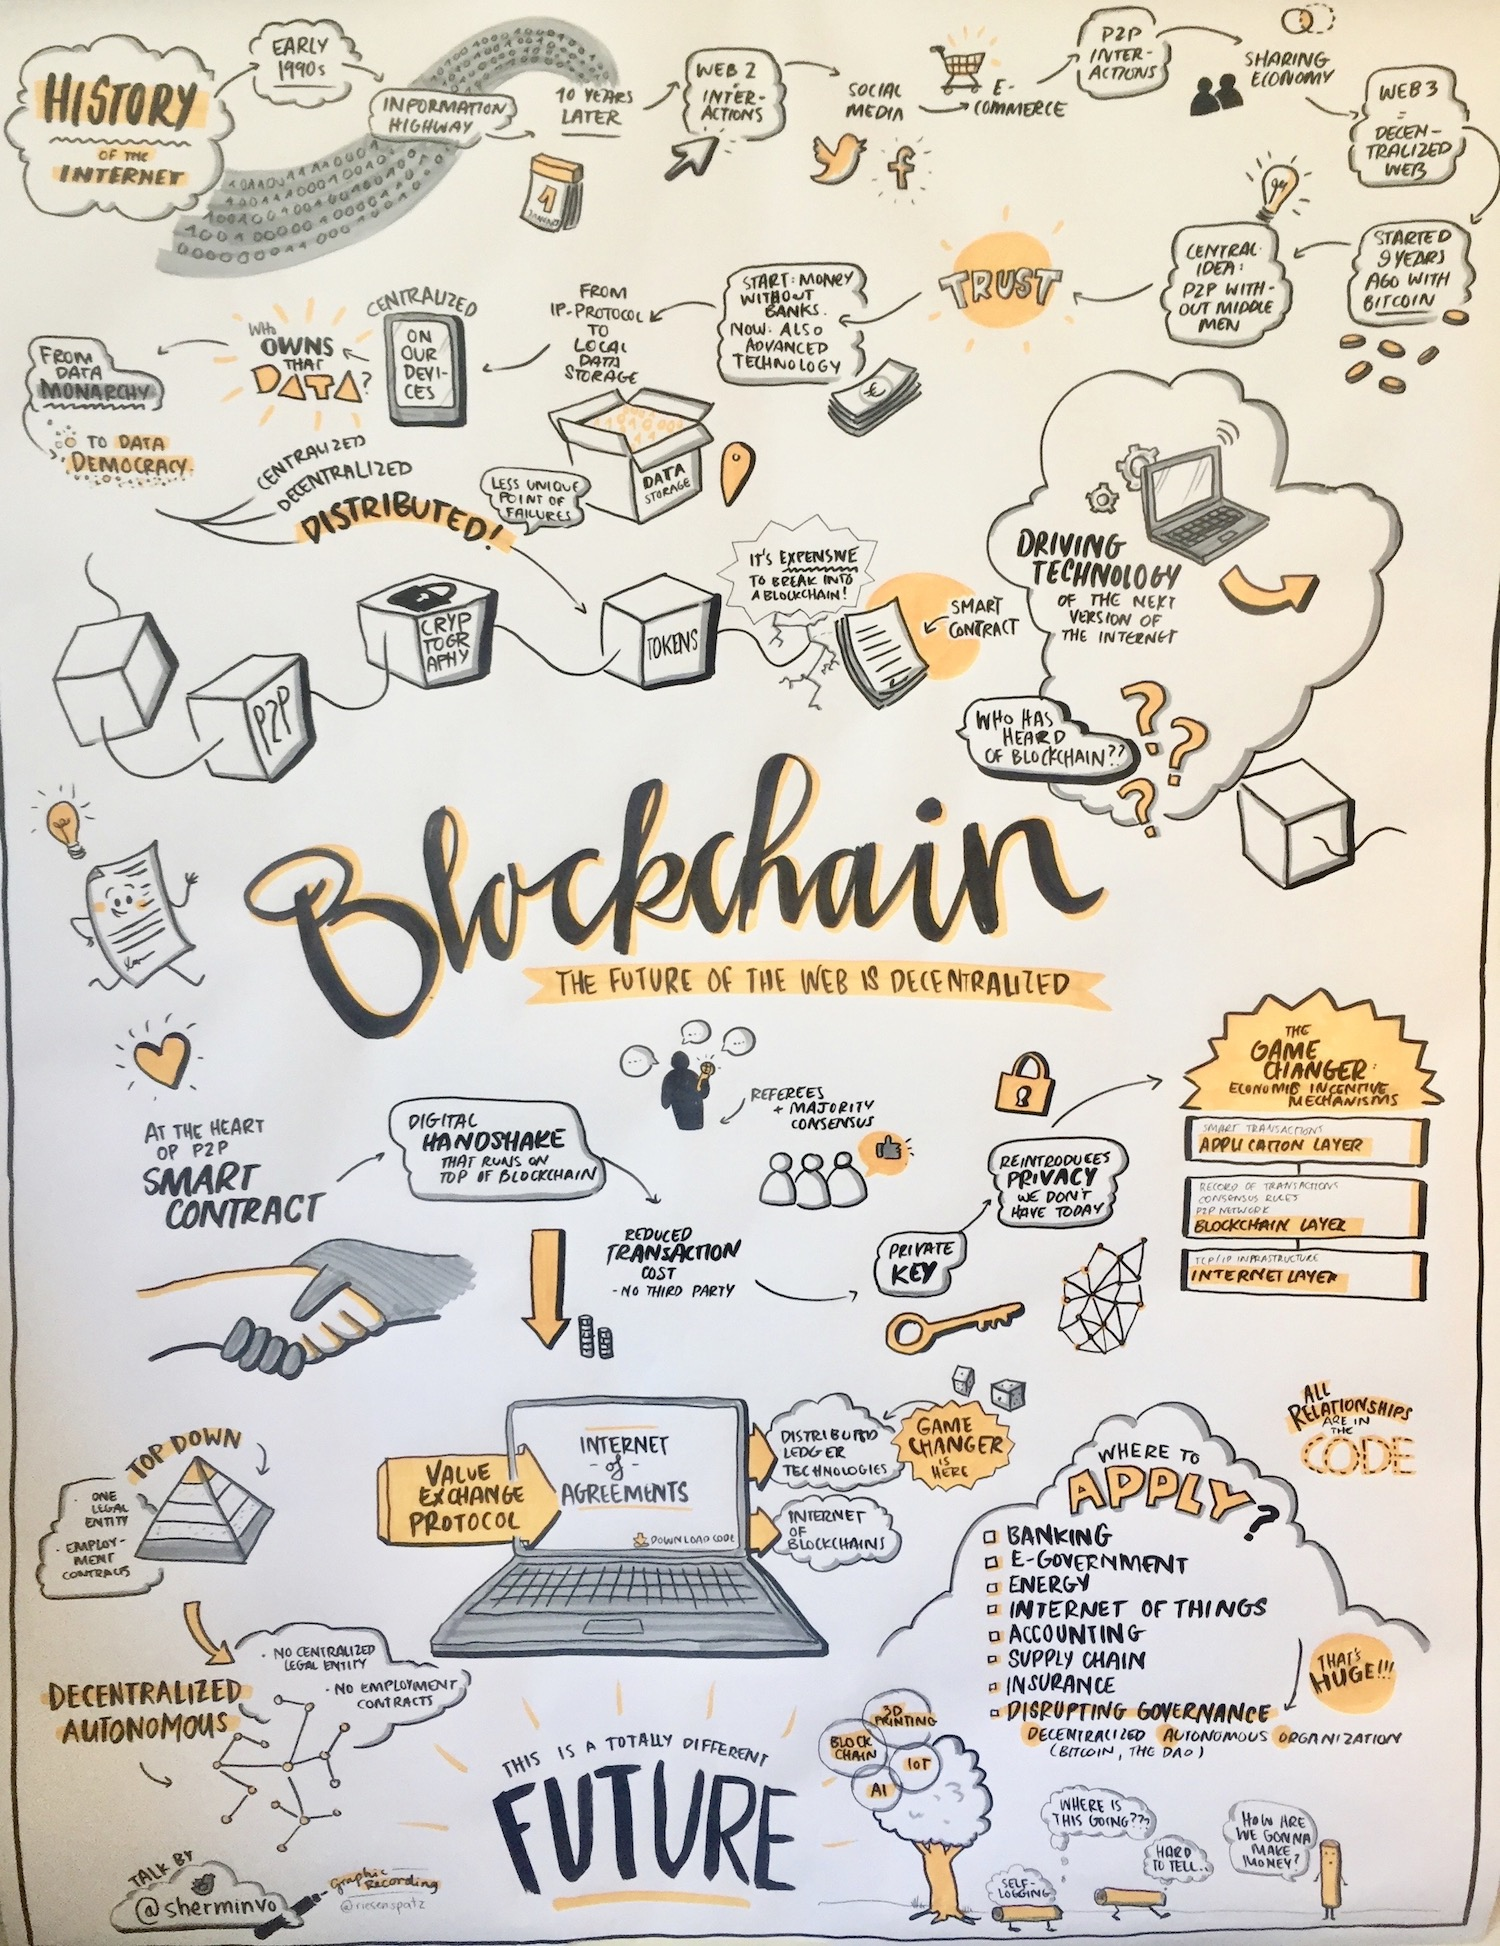 Blockchain Infographic describing how blockchain could change the future of Internet